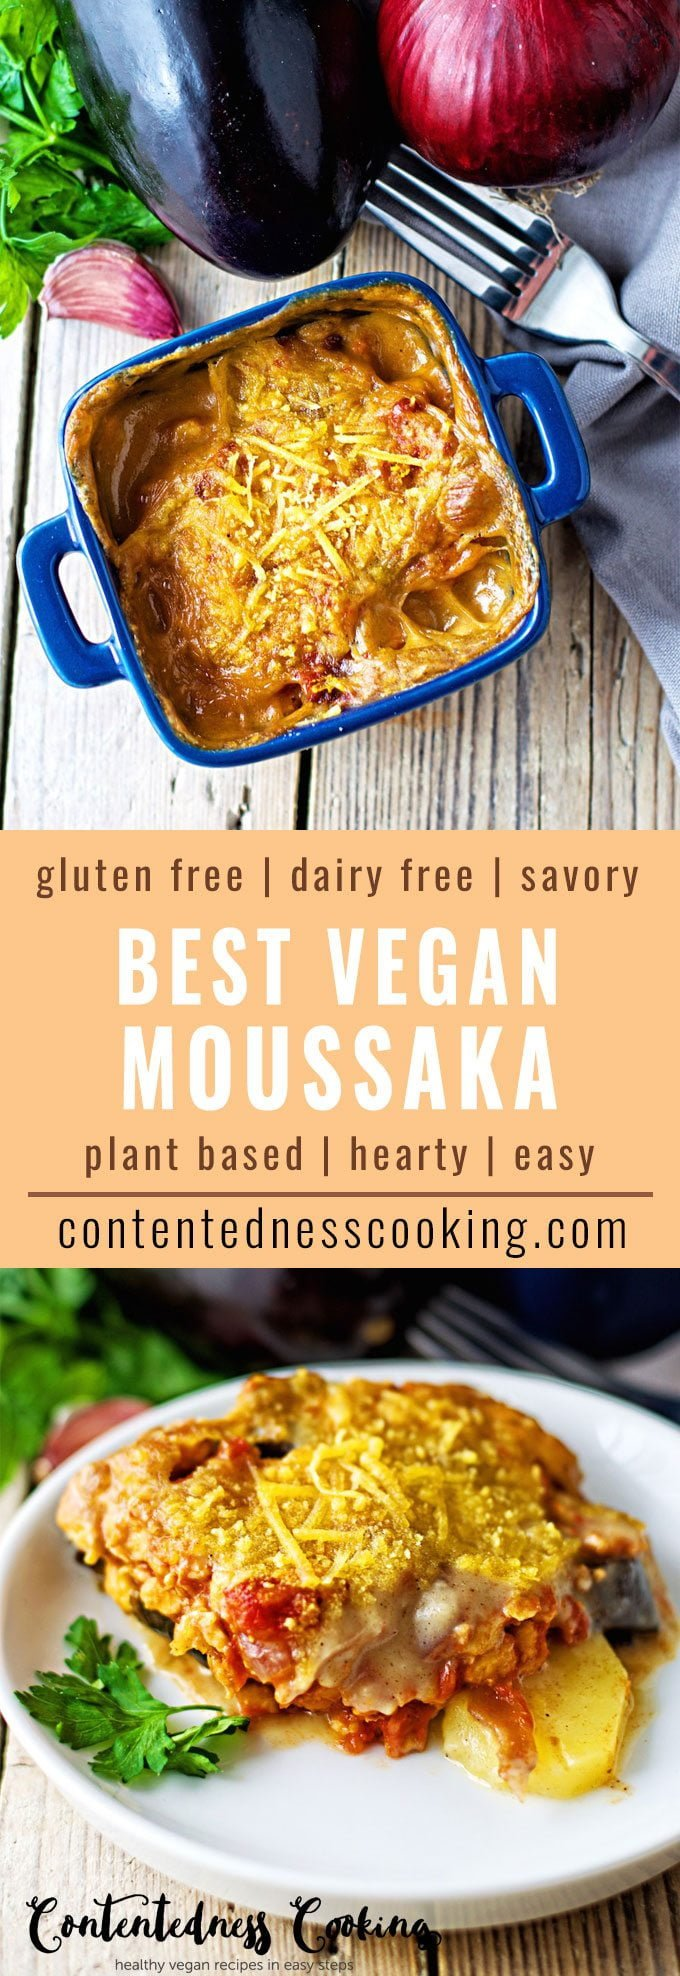 Best Vegan Moussaka | #vegan #glutenfree #contentednesscooking #plantbased #dairyfree